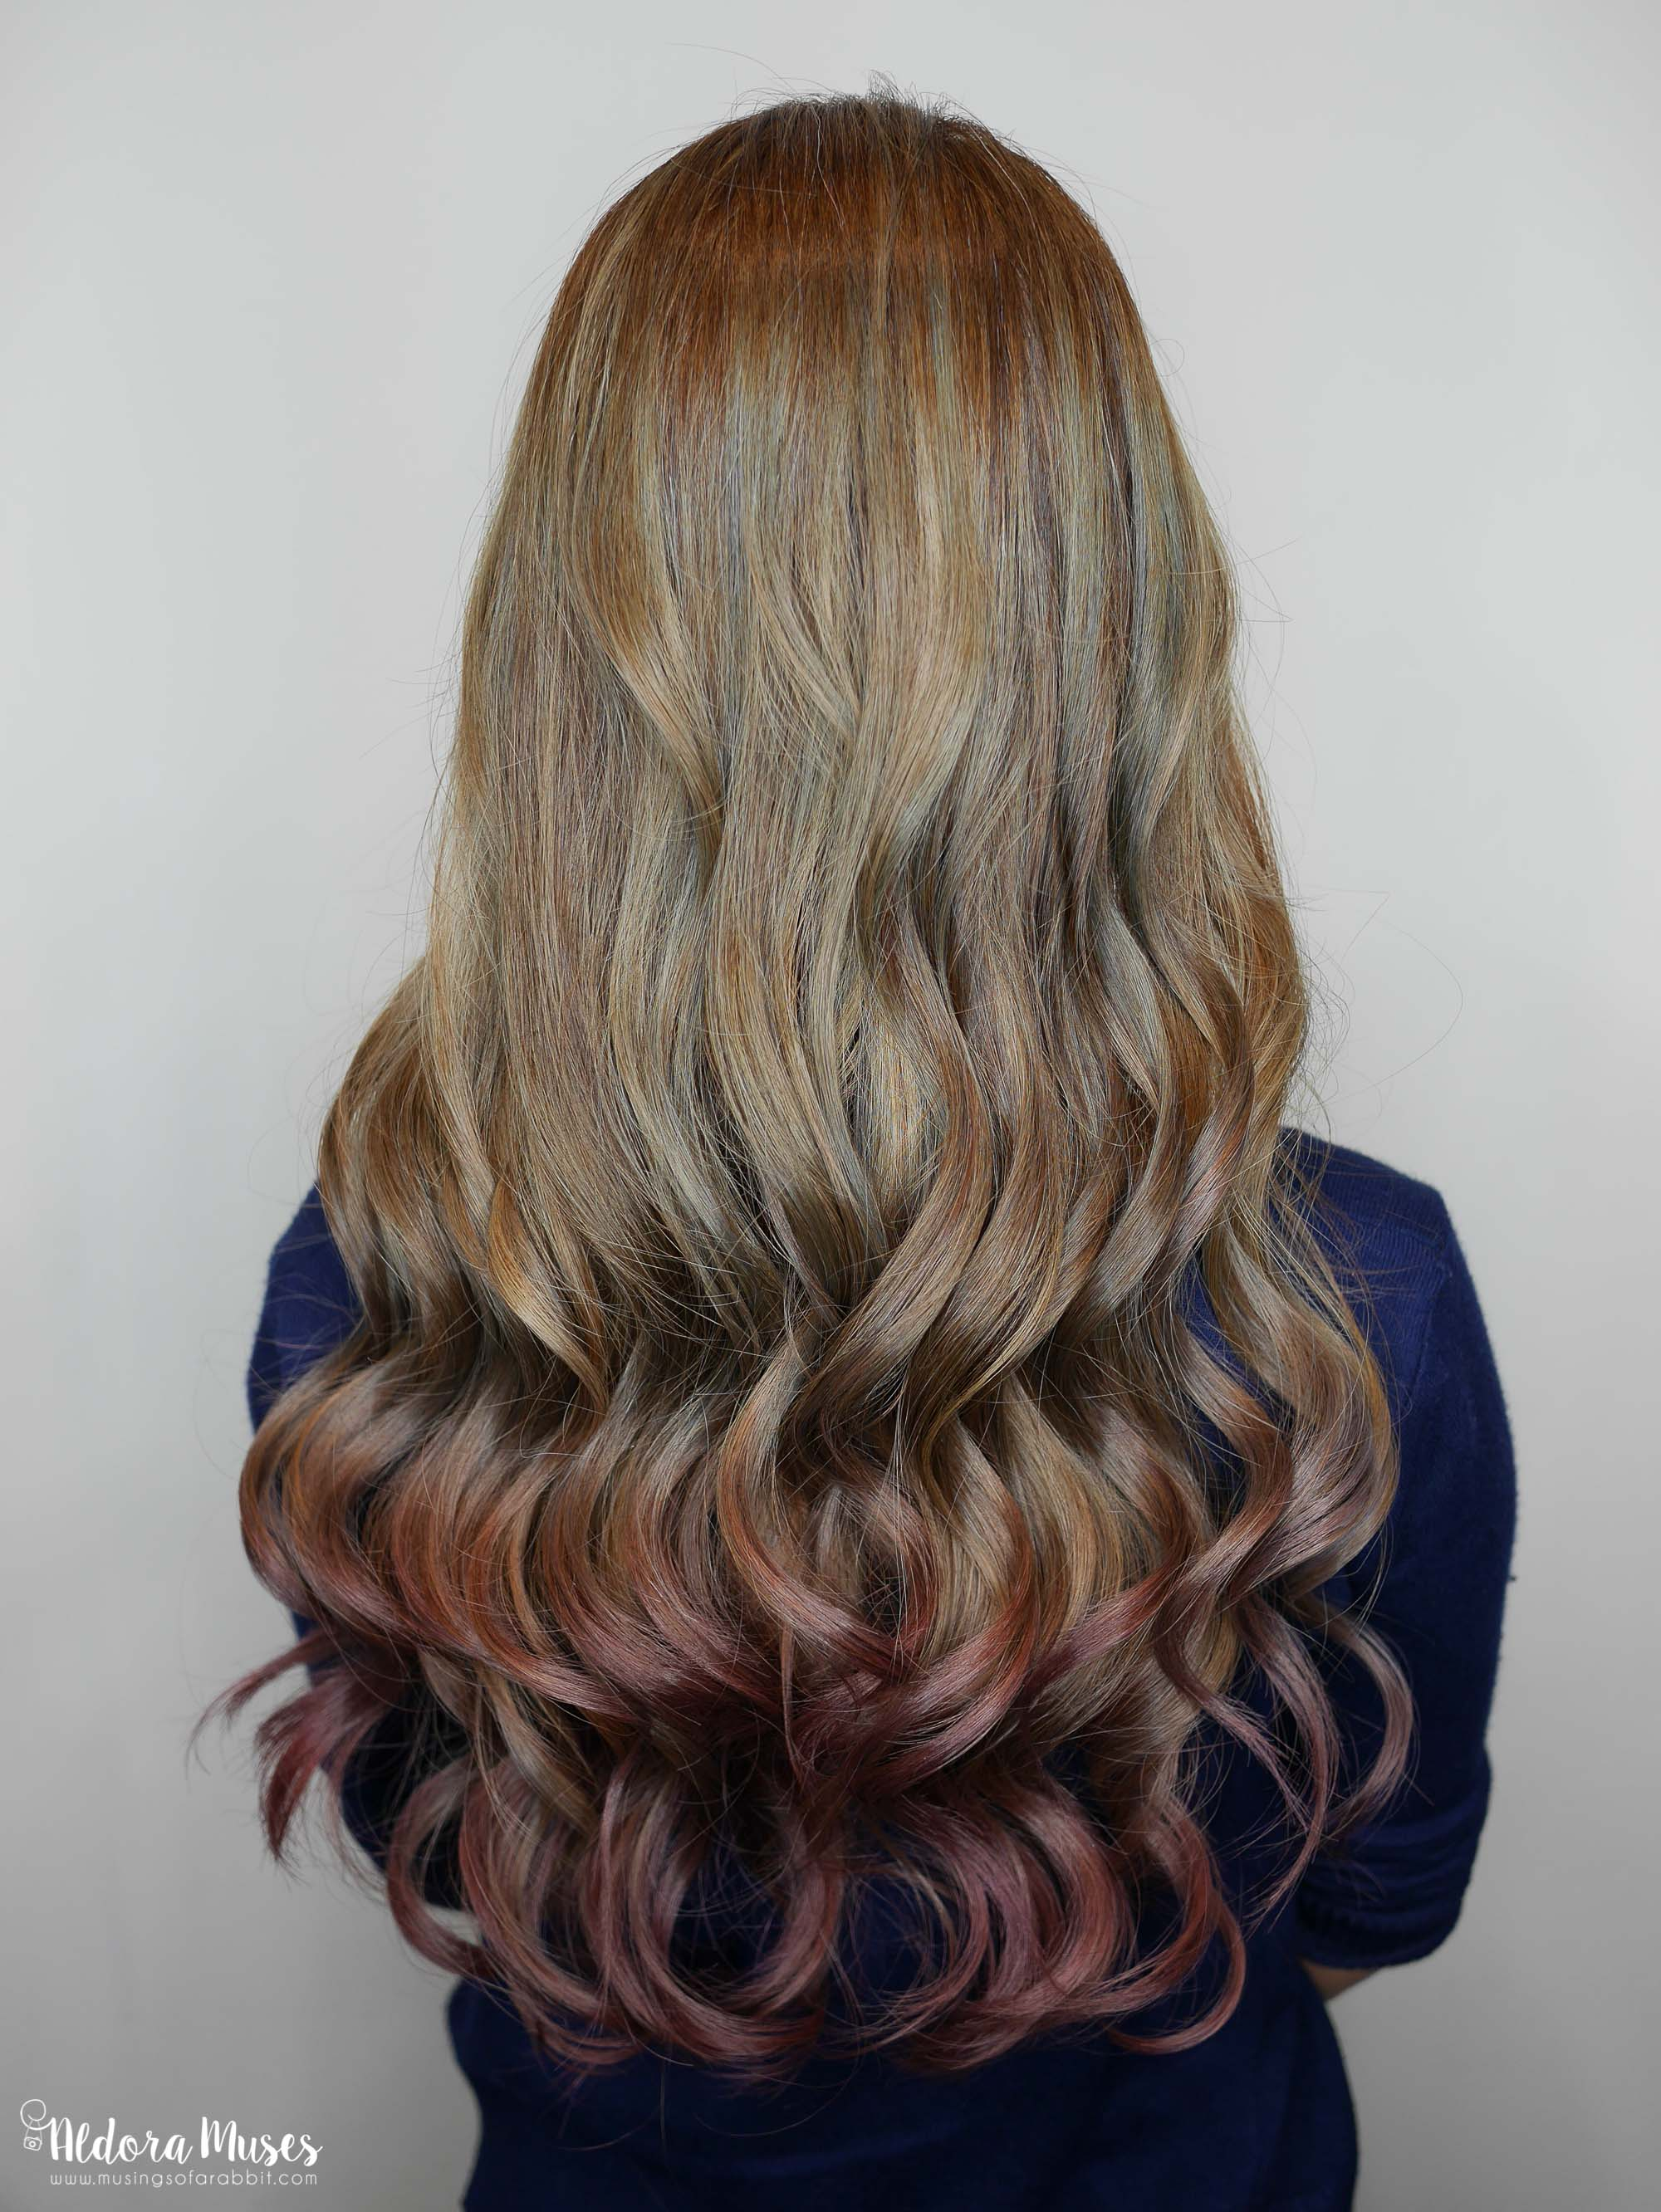 Chez Vous Hair Salon - Balayage Ombré Purple Hair